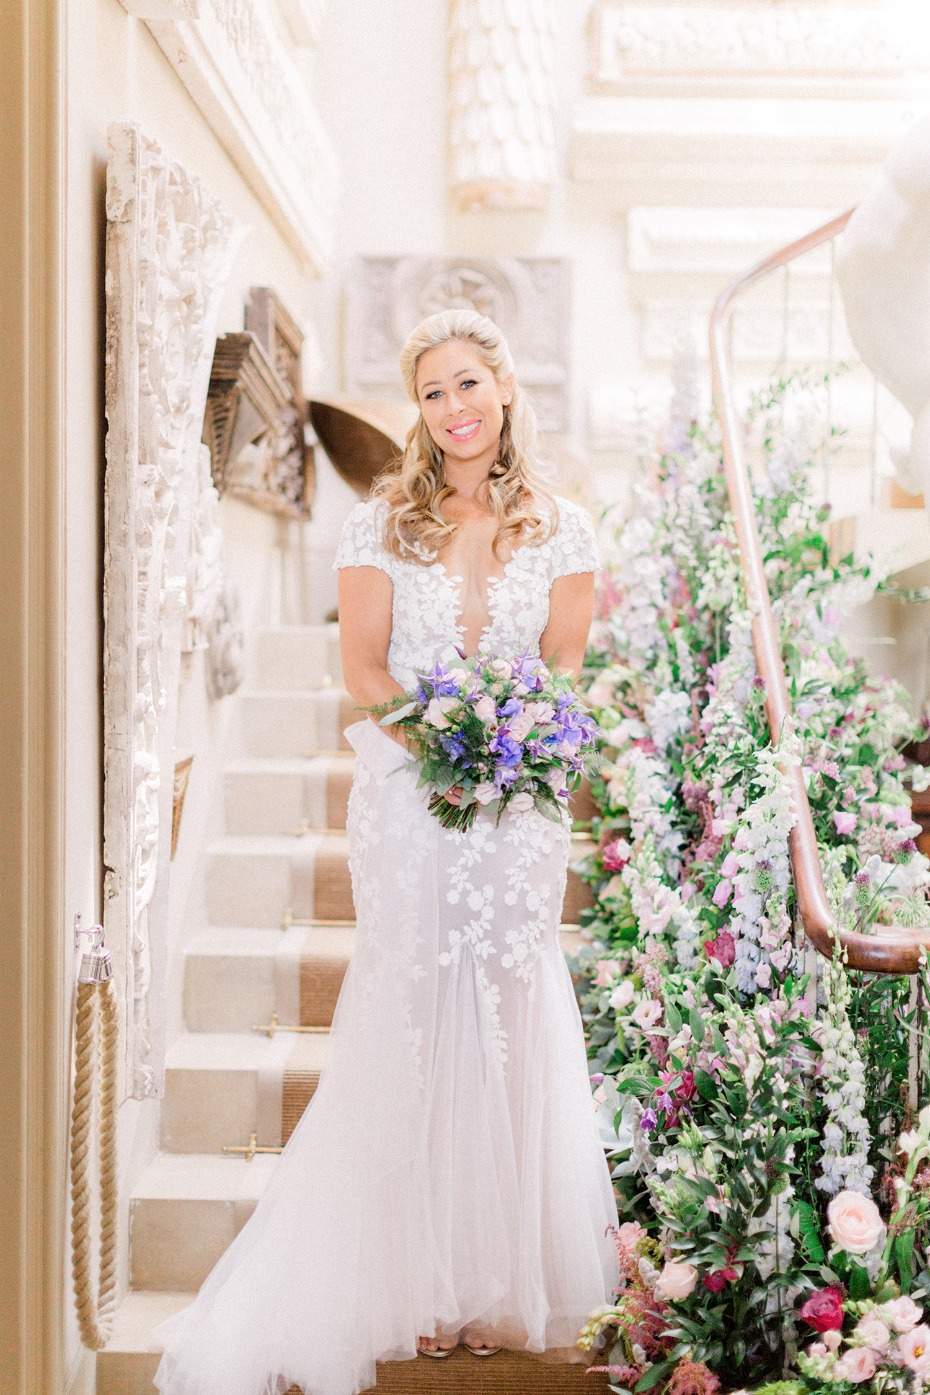 bride descending the floral stairs